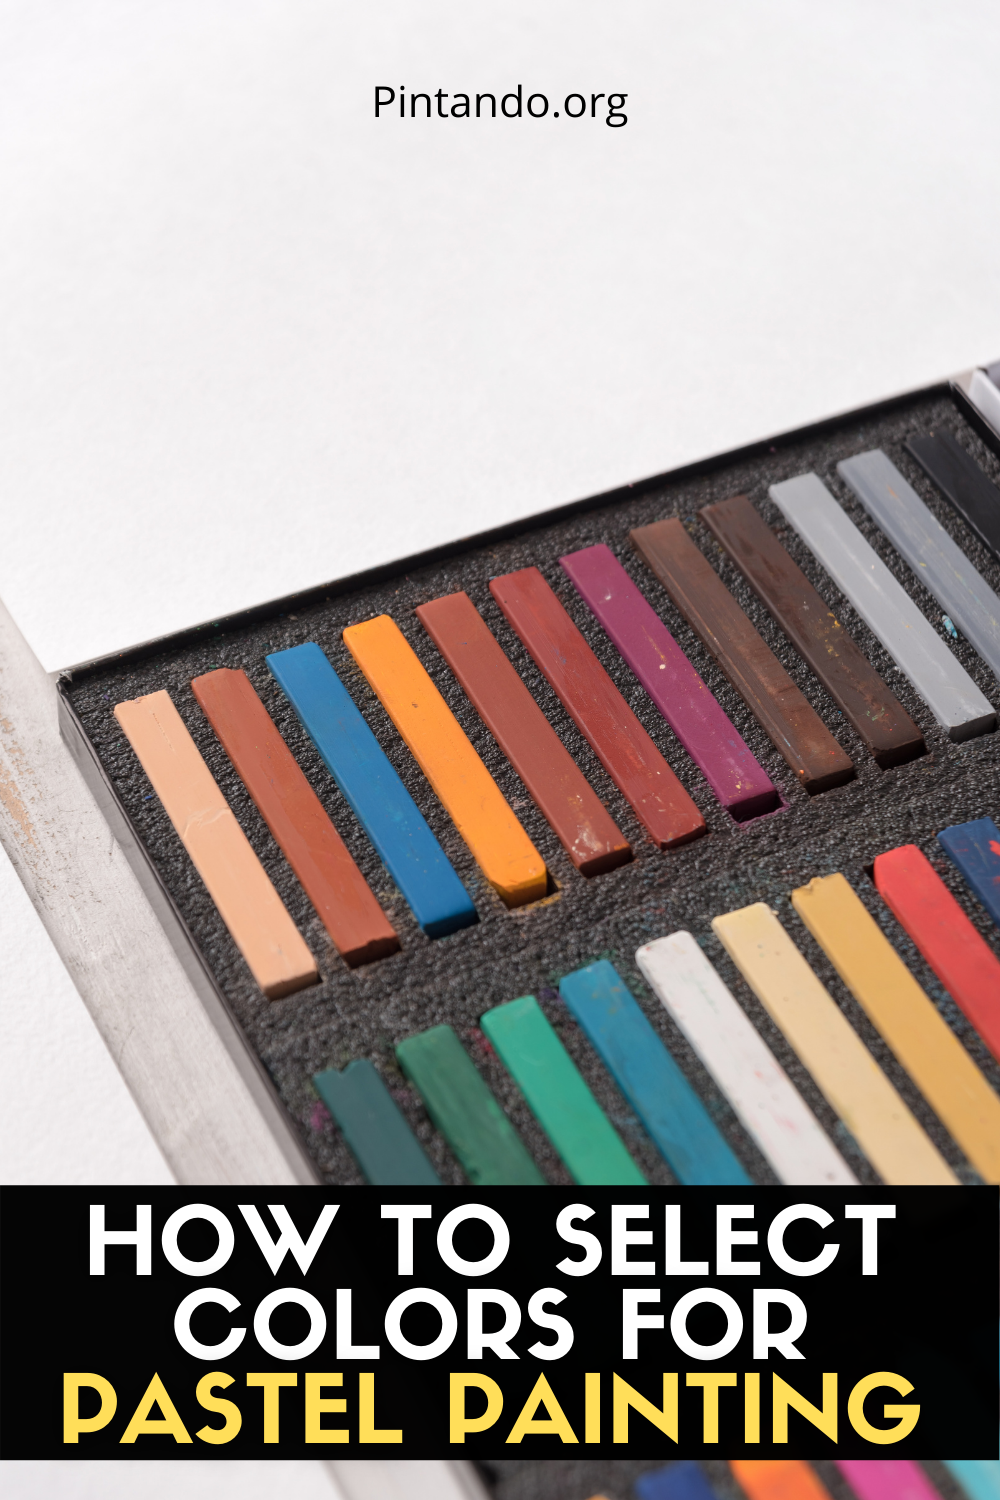 HOW TO SELECT COLORS FOR PASTEL PAINTING